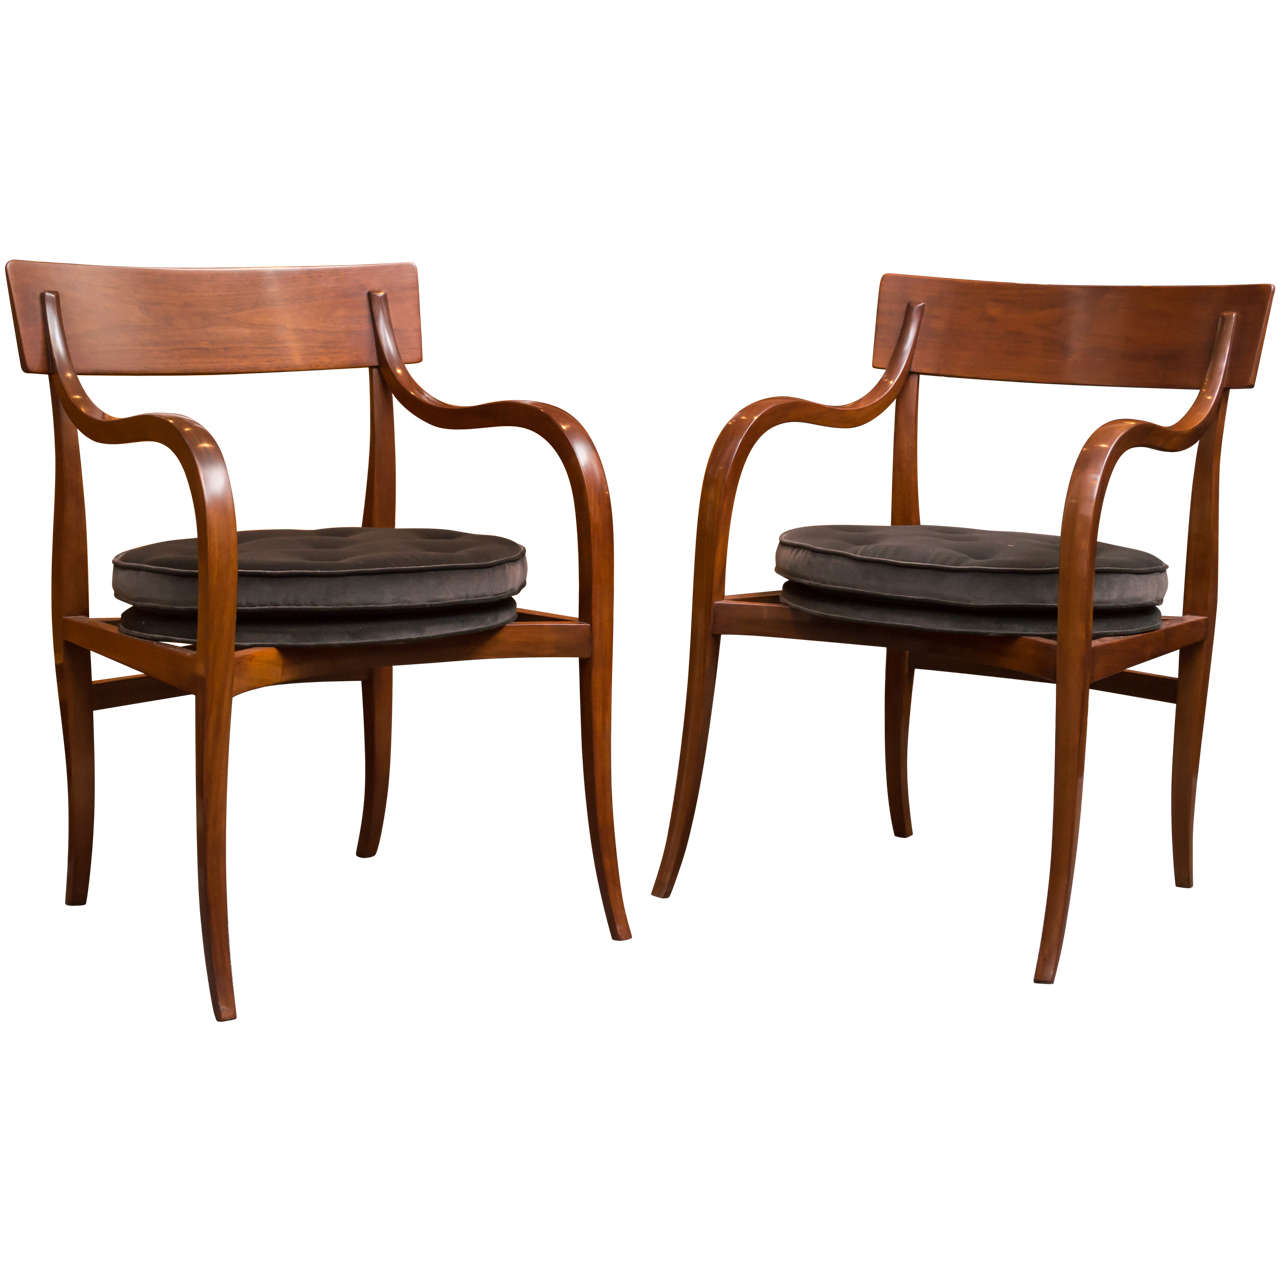 Alexandria Chair by Edward Wormley for Dunbar Furniture Co. 1